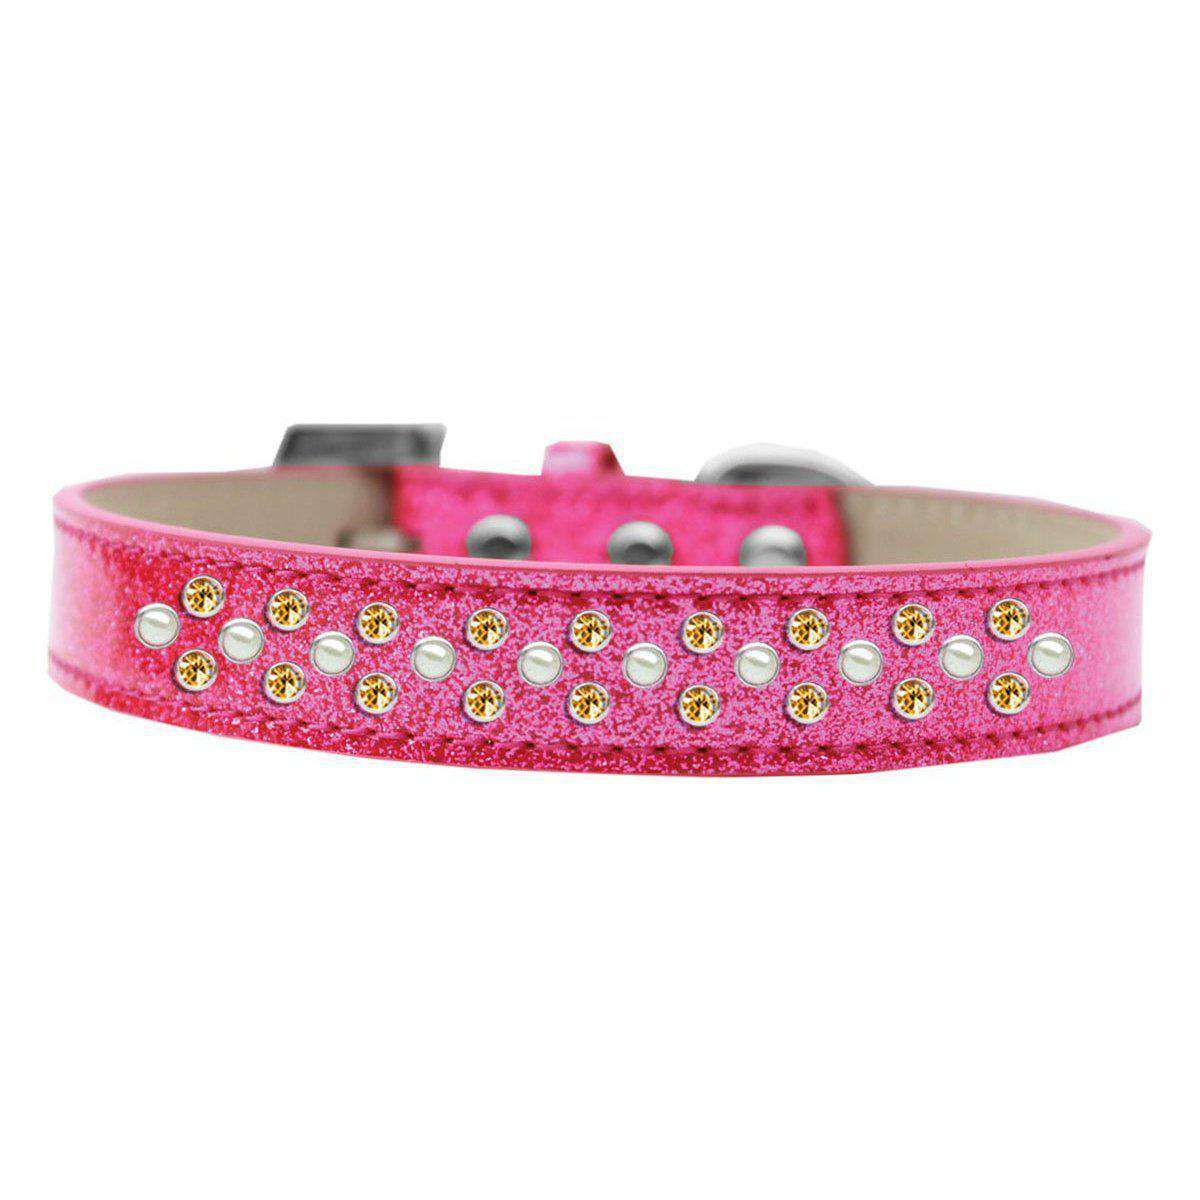 Mirage Pet Sprinkles Ice Cream Adjustable Dog Collar Pearl And Yellow Crystals Size 16 - Pink-Mirage Pet Products-DirtyFurClothing